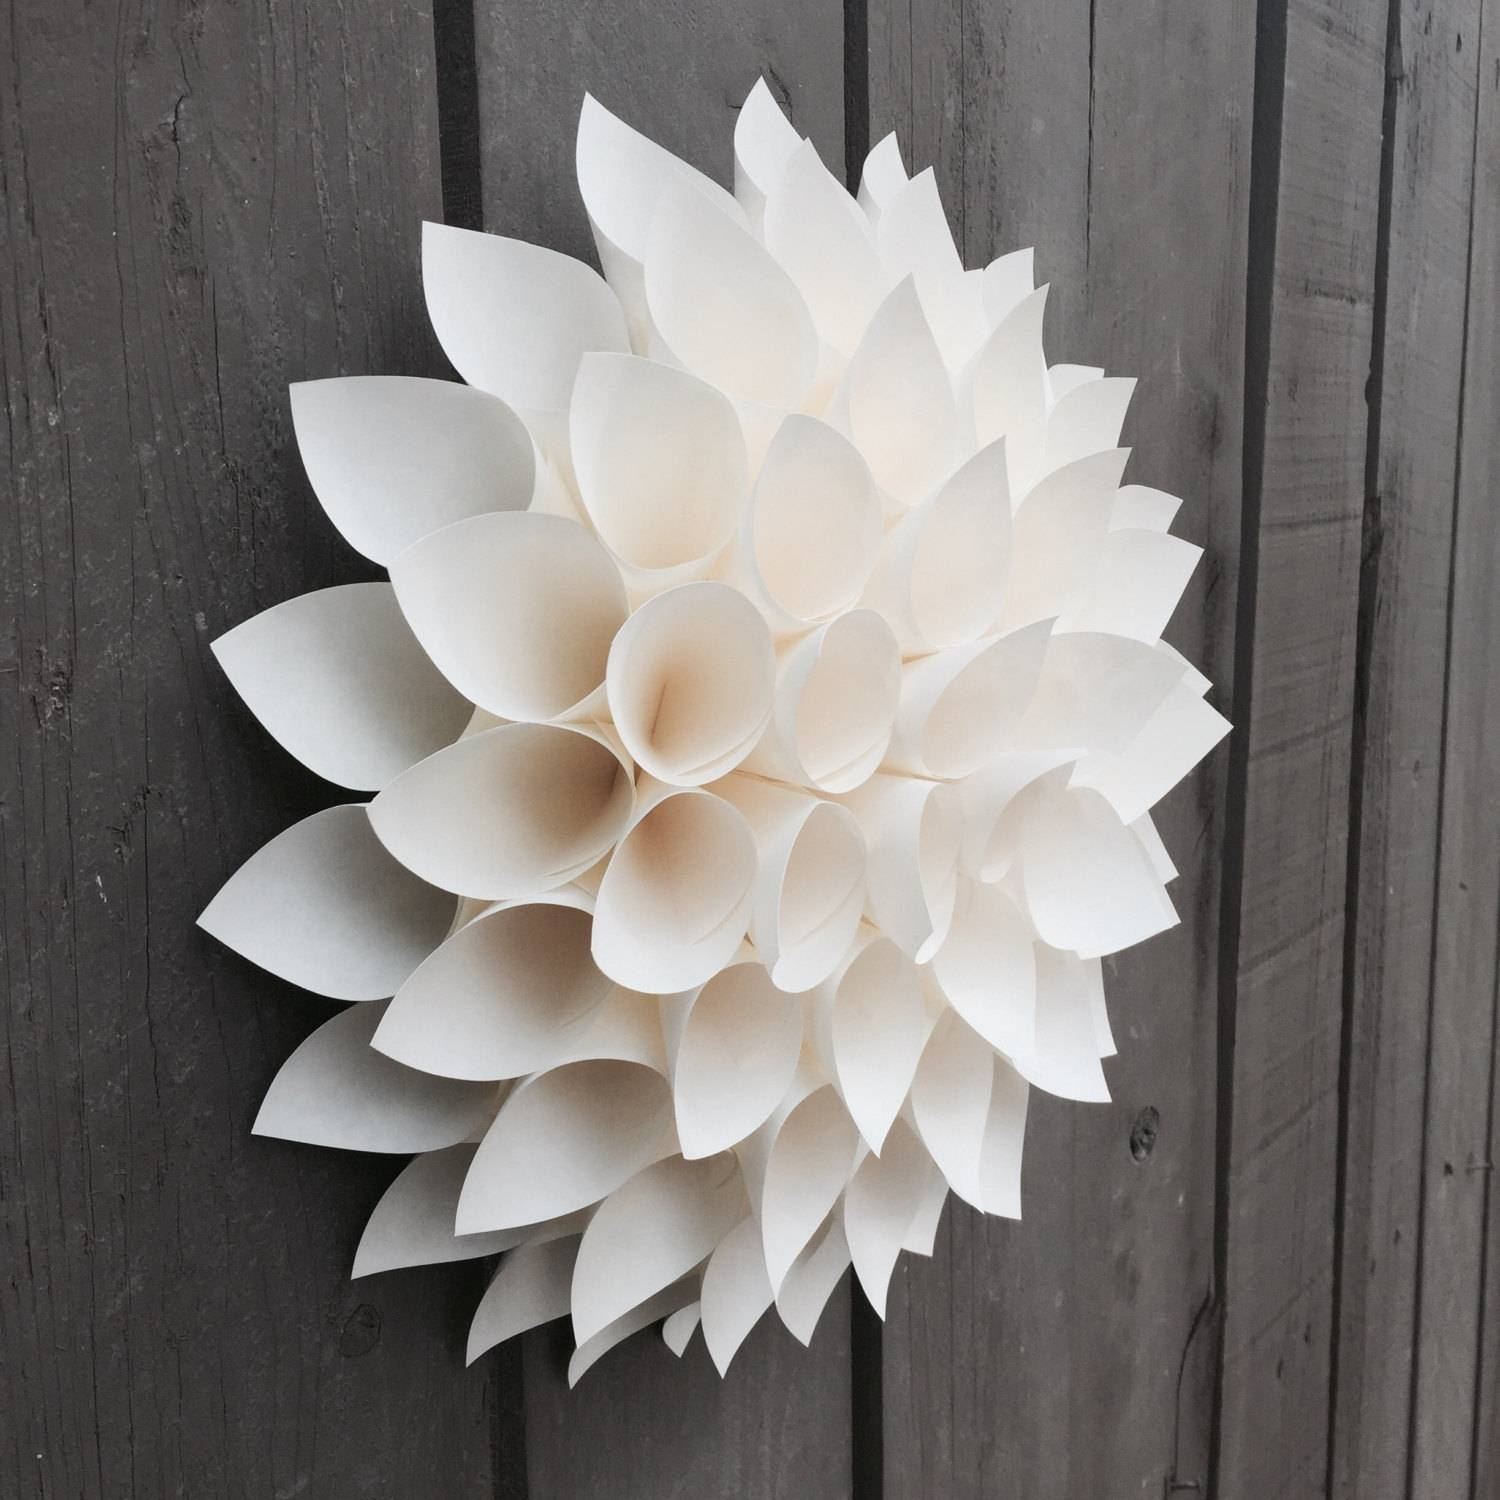 Articles With 3D Flower Wall Art Uk Tag: 3D Flower Wall Art Images For 2018 Umbra 3D Flower Wall Art (View 9 of 20)